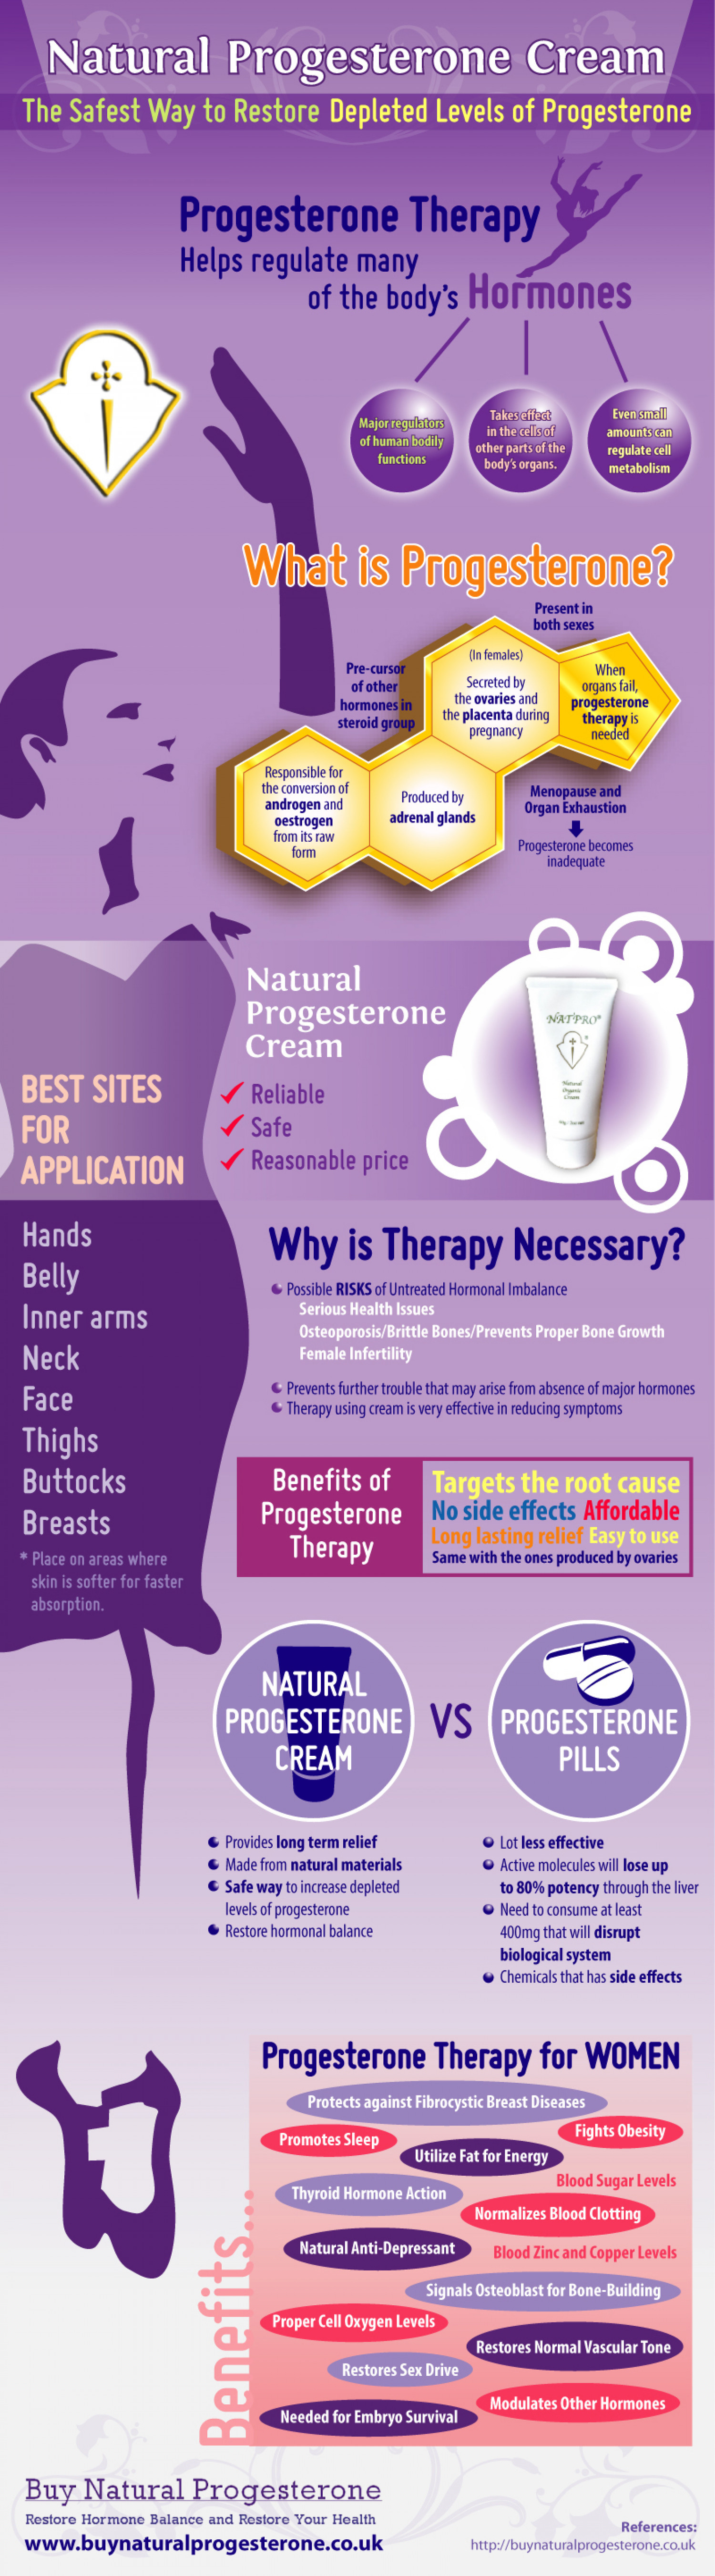 Natural Progesterone Cream: The Safest Way to Restore Depleted Levels of Progesterone Infographic